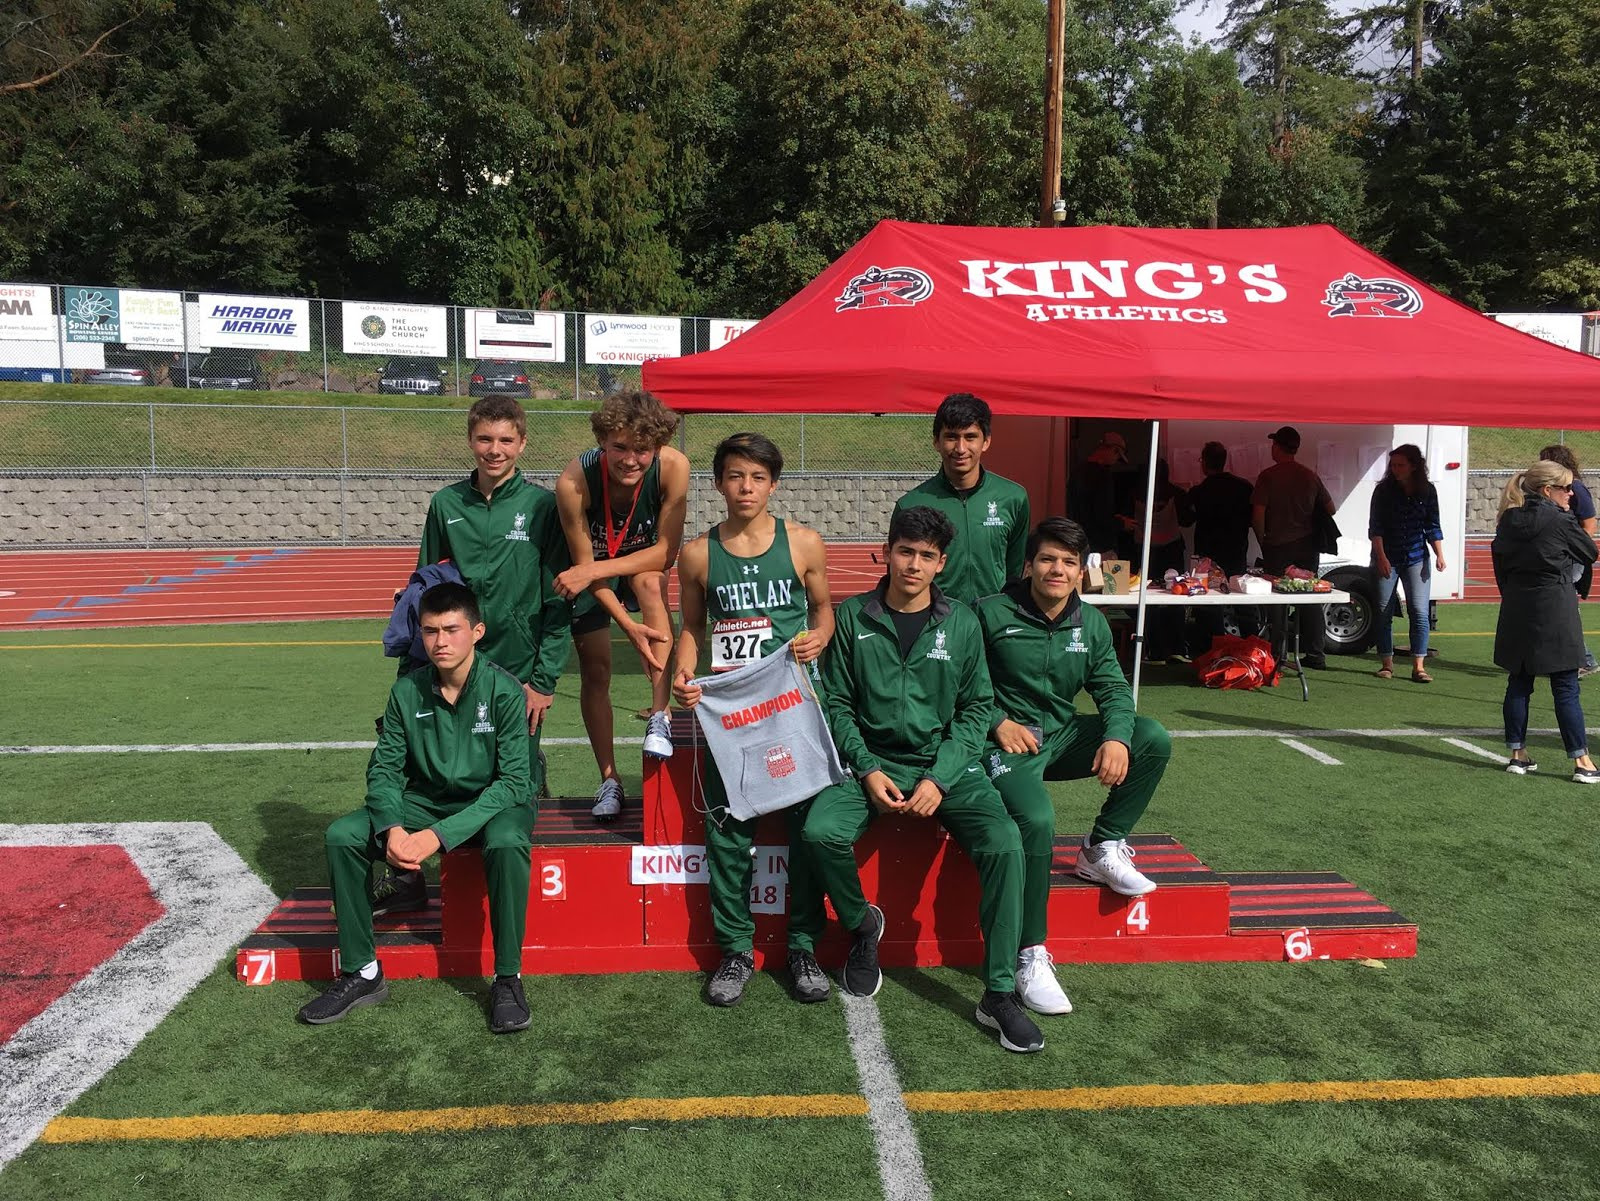 Chelan Cross Country Teams Both Place Third at King's Cross